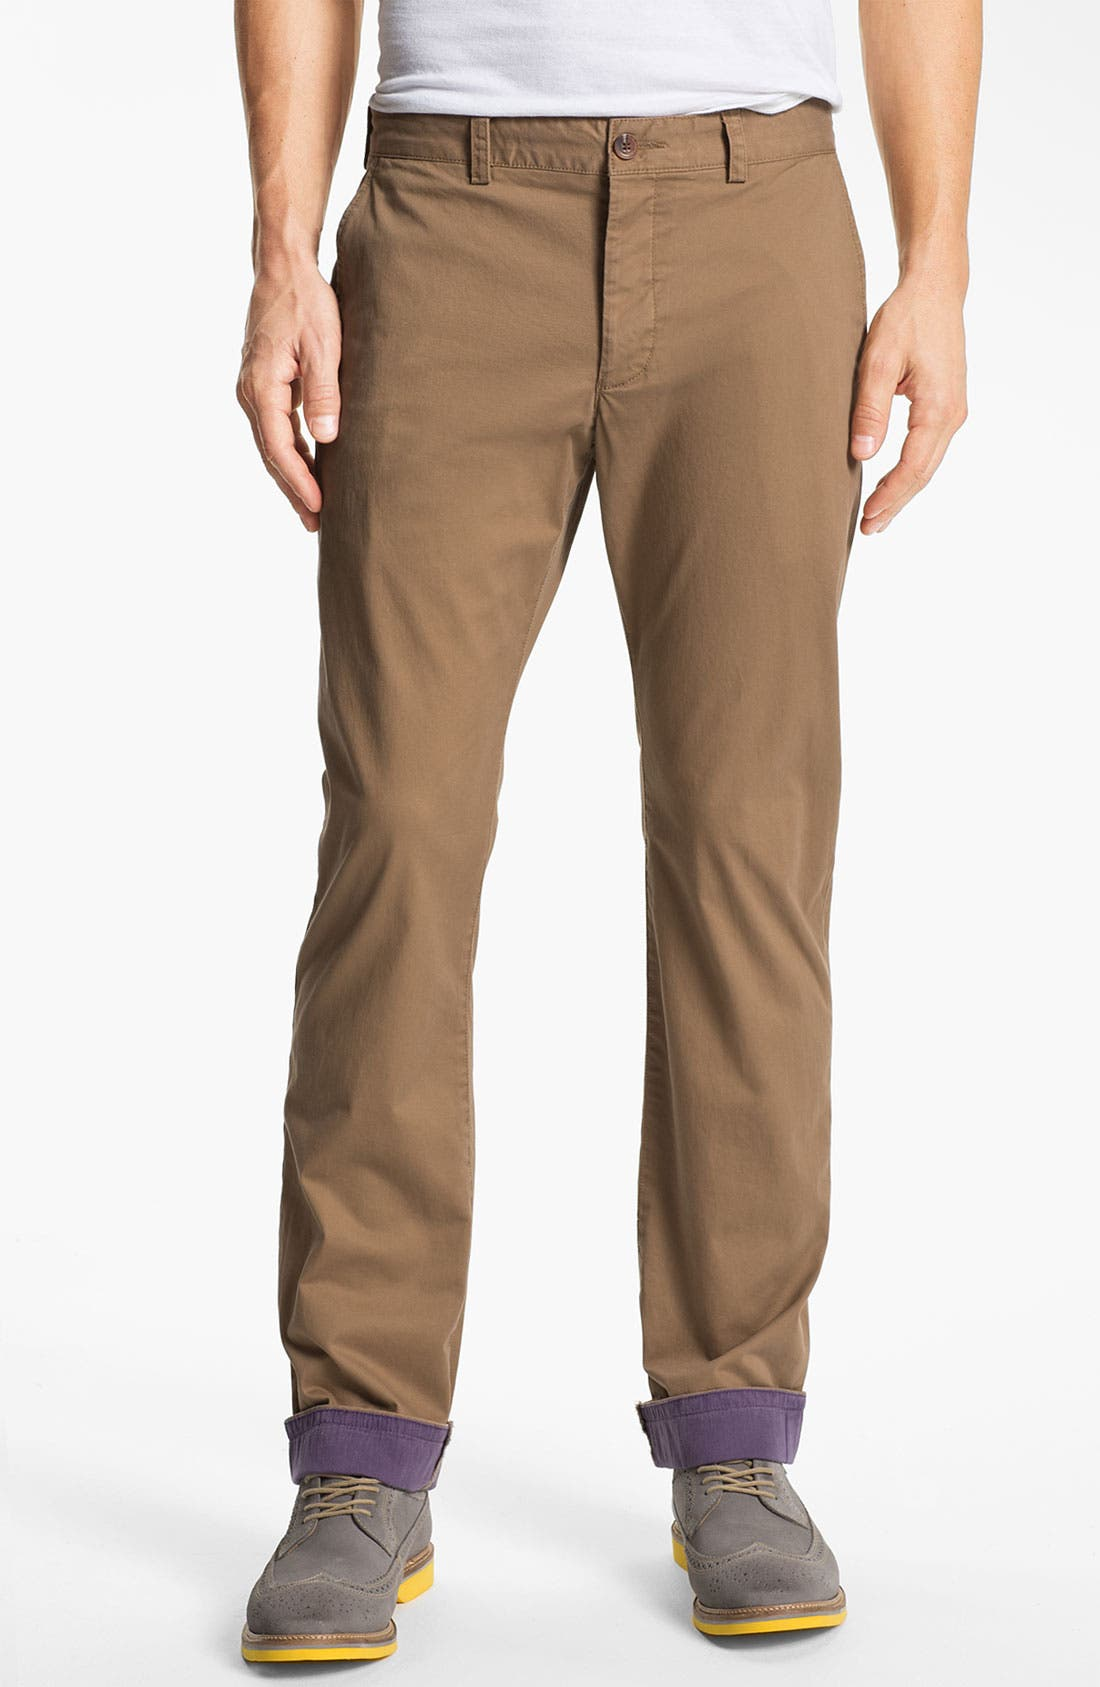 Alternate Image 1 Selected - French Connection Flat Front Chinos